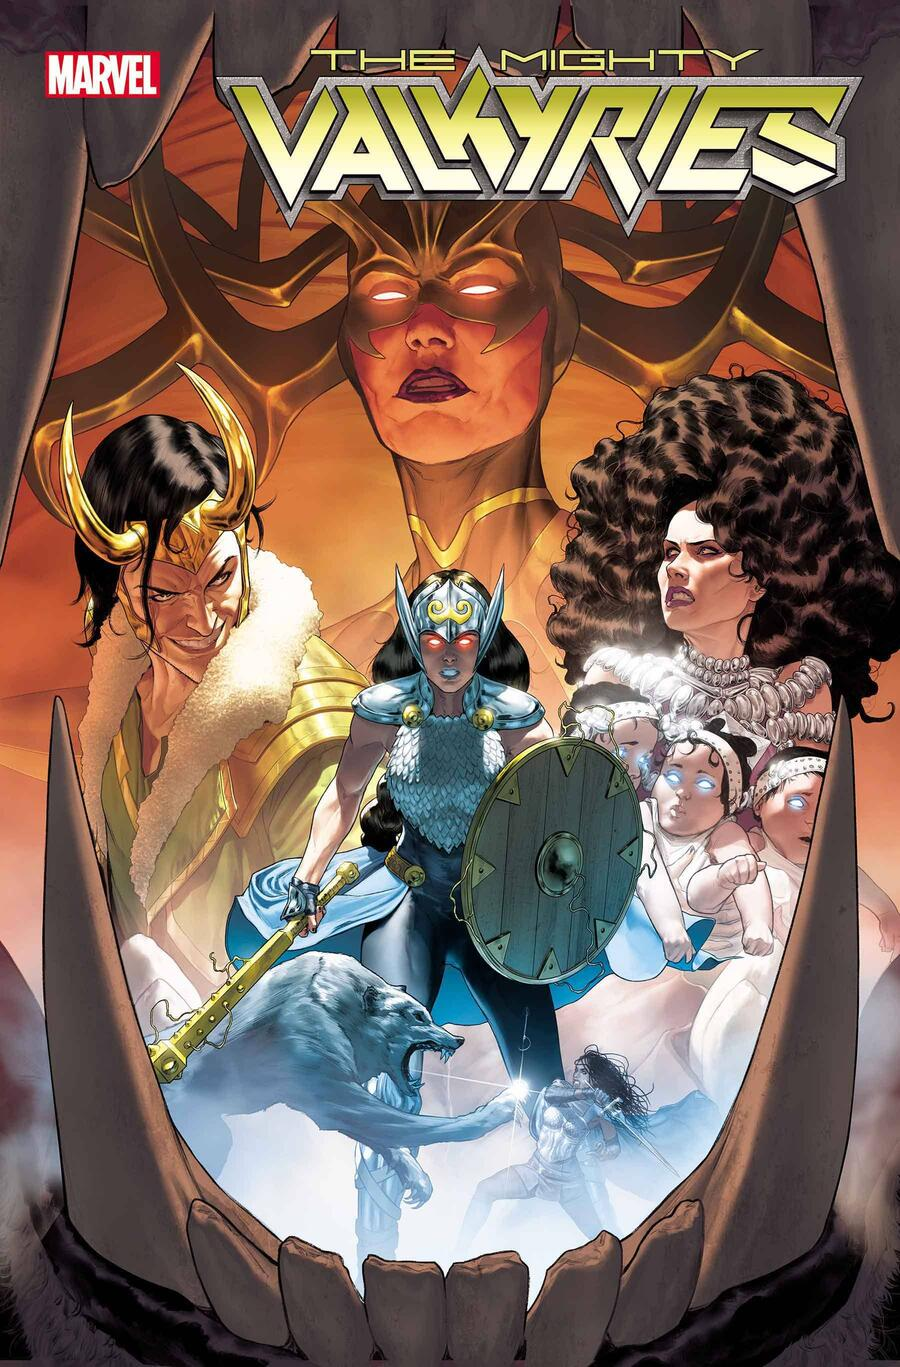 'The Mighty Valkyries' #1